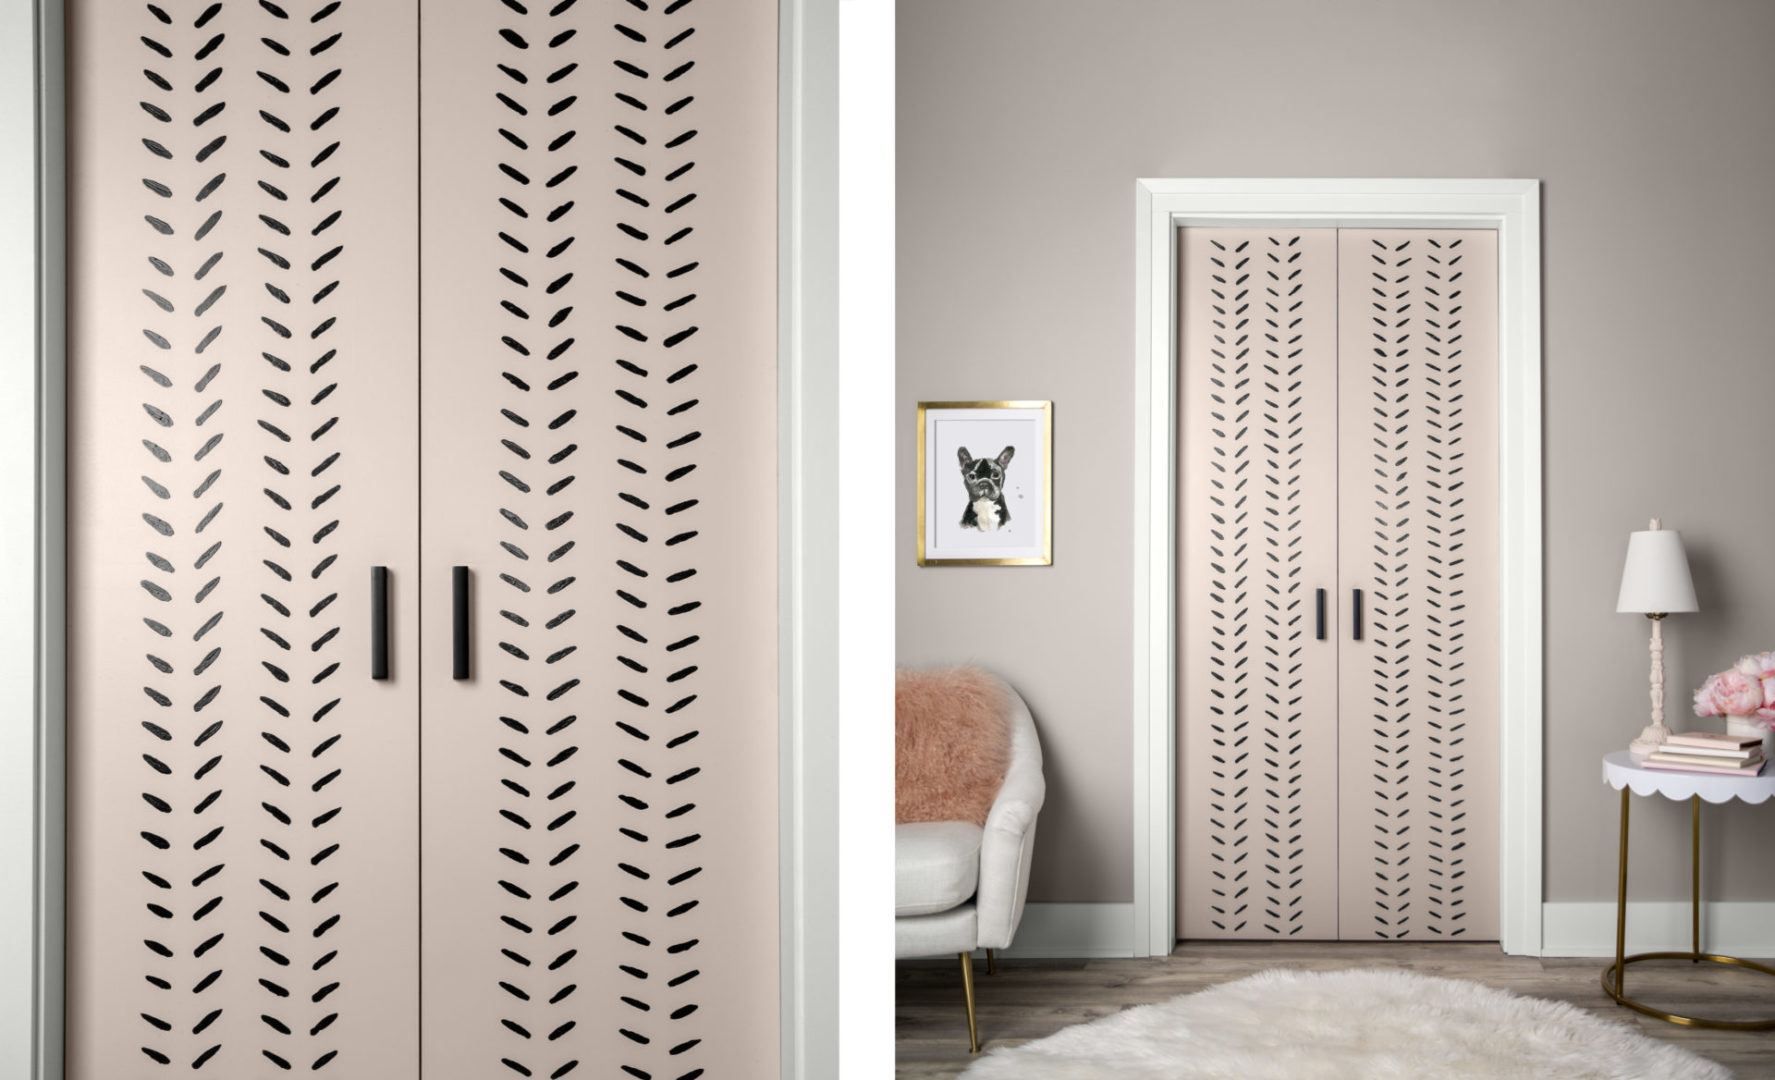 A close-up of a pink door with black short lines placed at a slight angle, in a pattern going vertically up the door.  Next to this is an image of a room showing the doors placed on the closet.